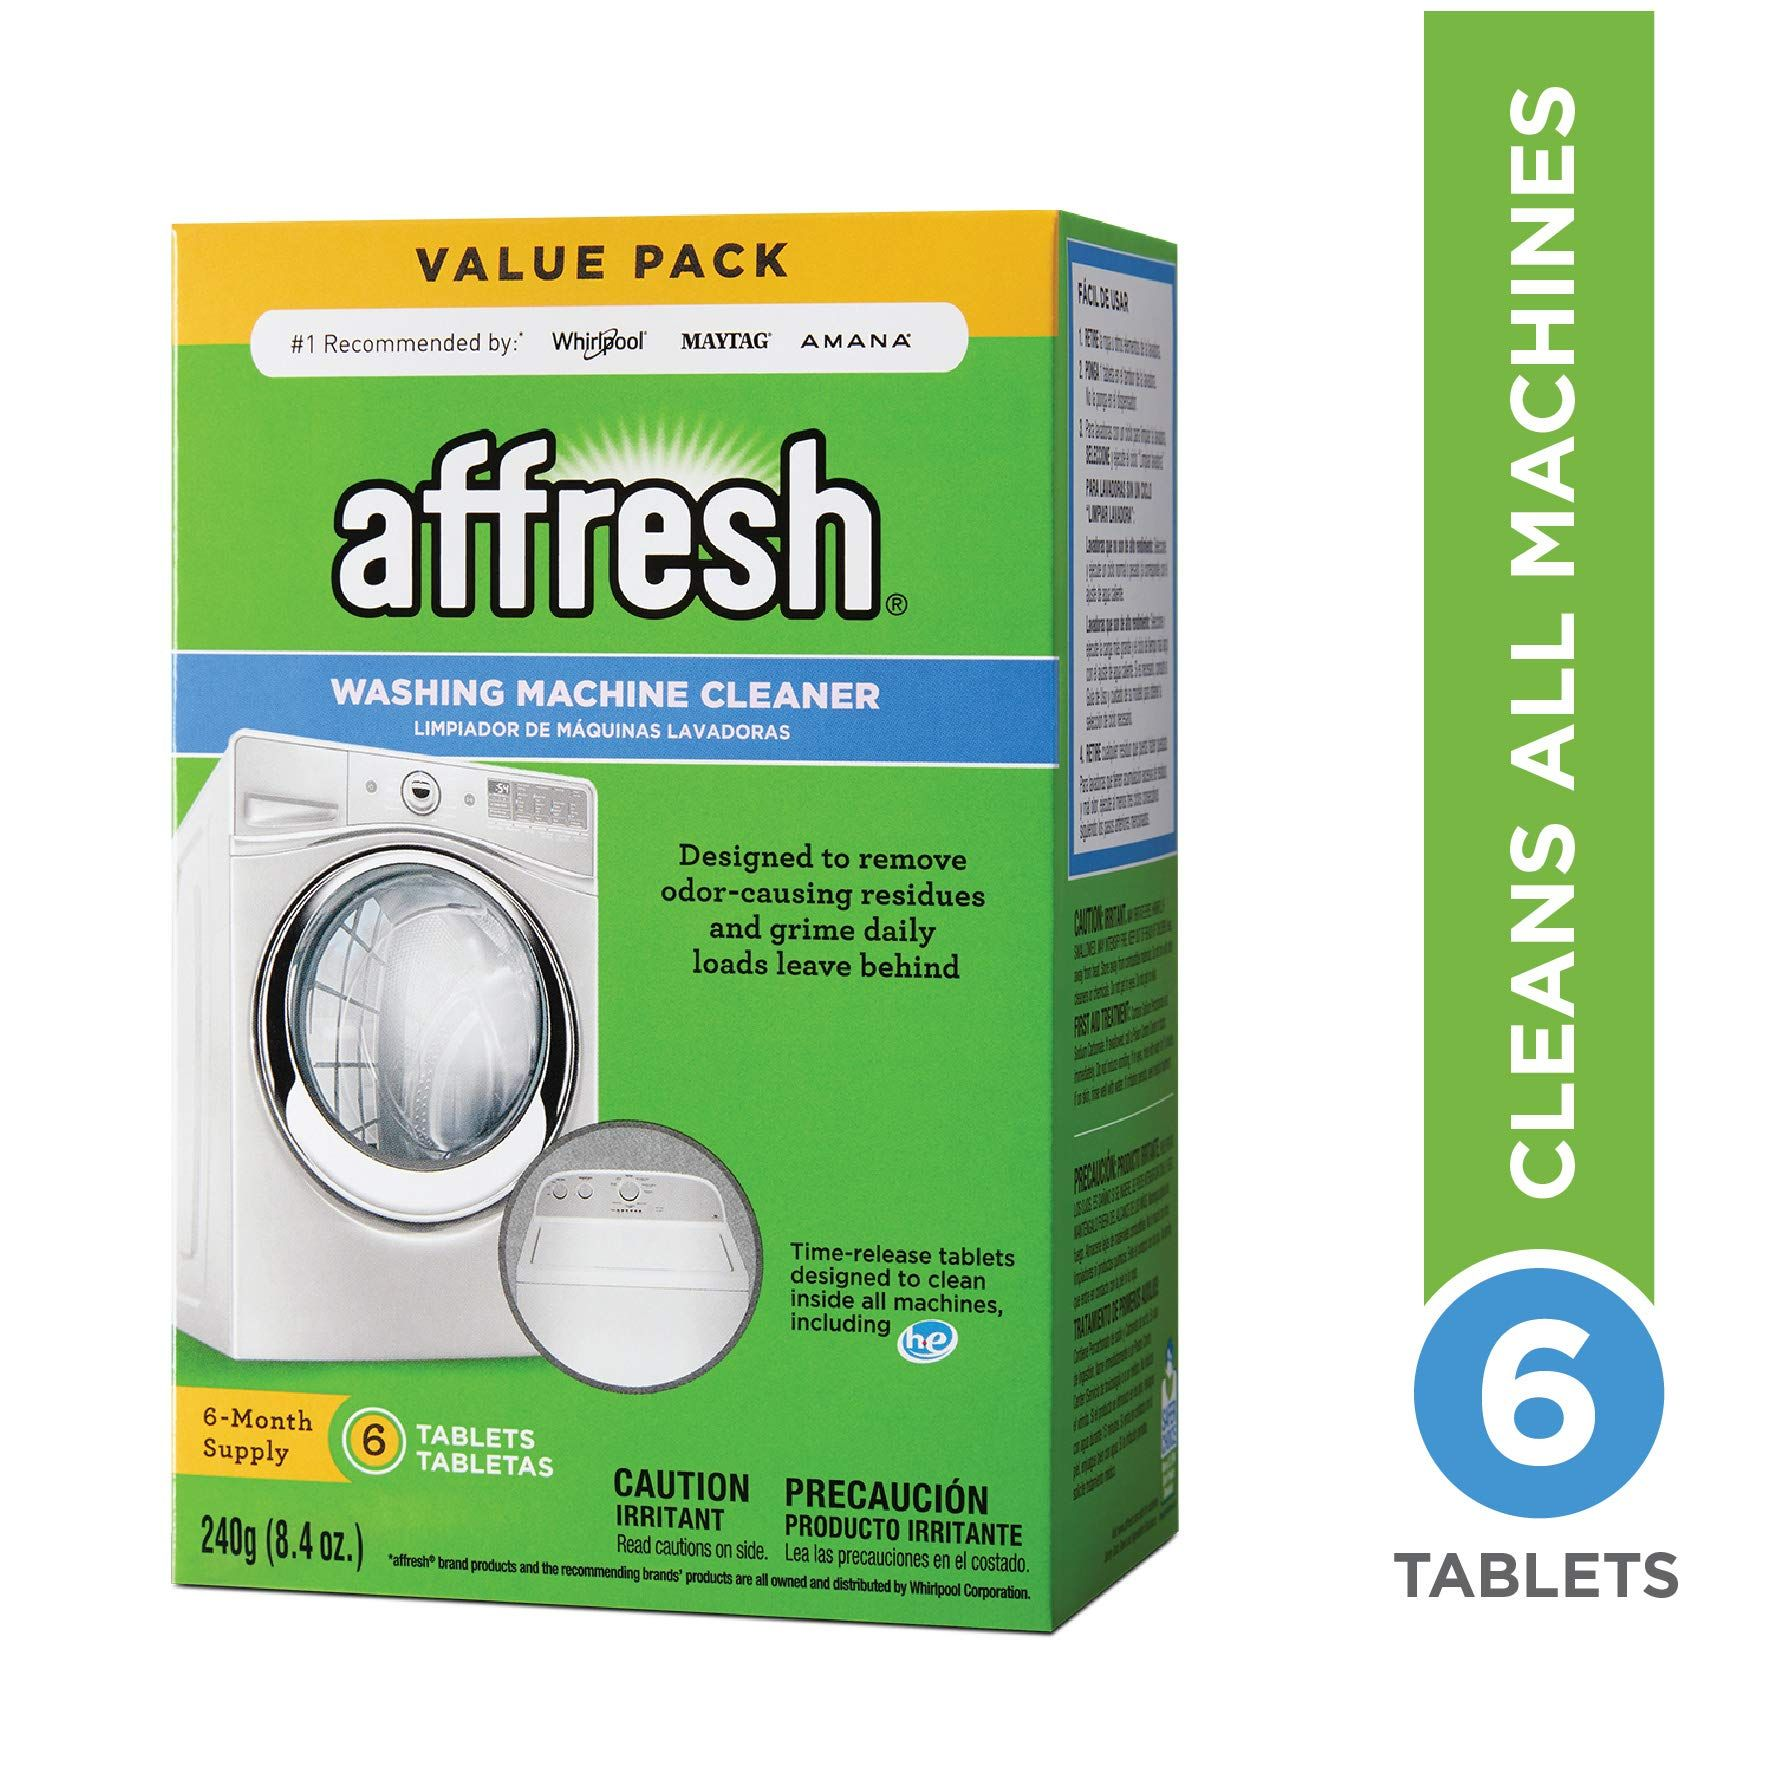 Affresh Washer Machine Cleaner 6 Tablets 8 4 Oz Washing